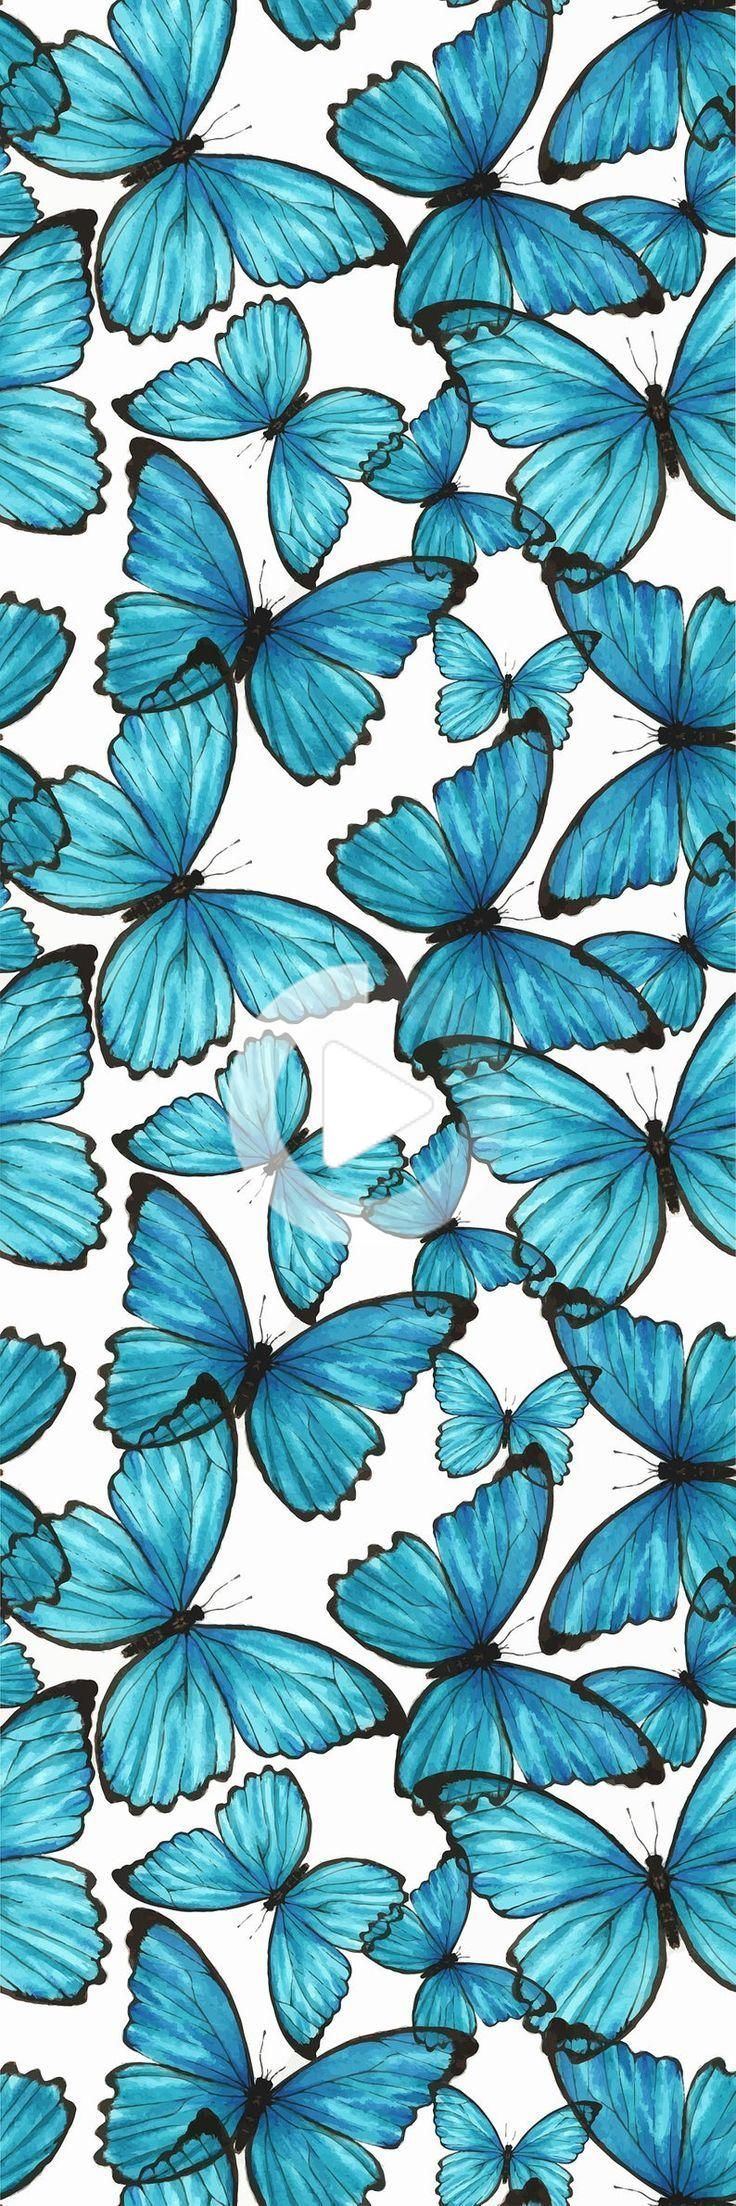 Pin By Anto Camano On Wallpapers Butterfly Wallpaper Iphone Butterfly Wallpaper Homescreen Wallpaper